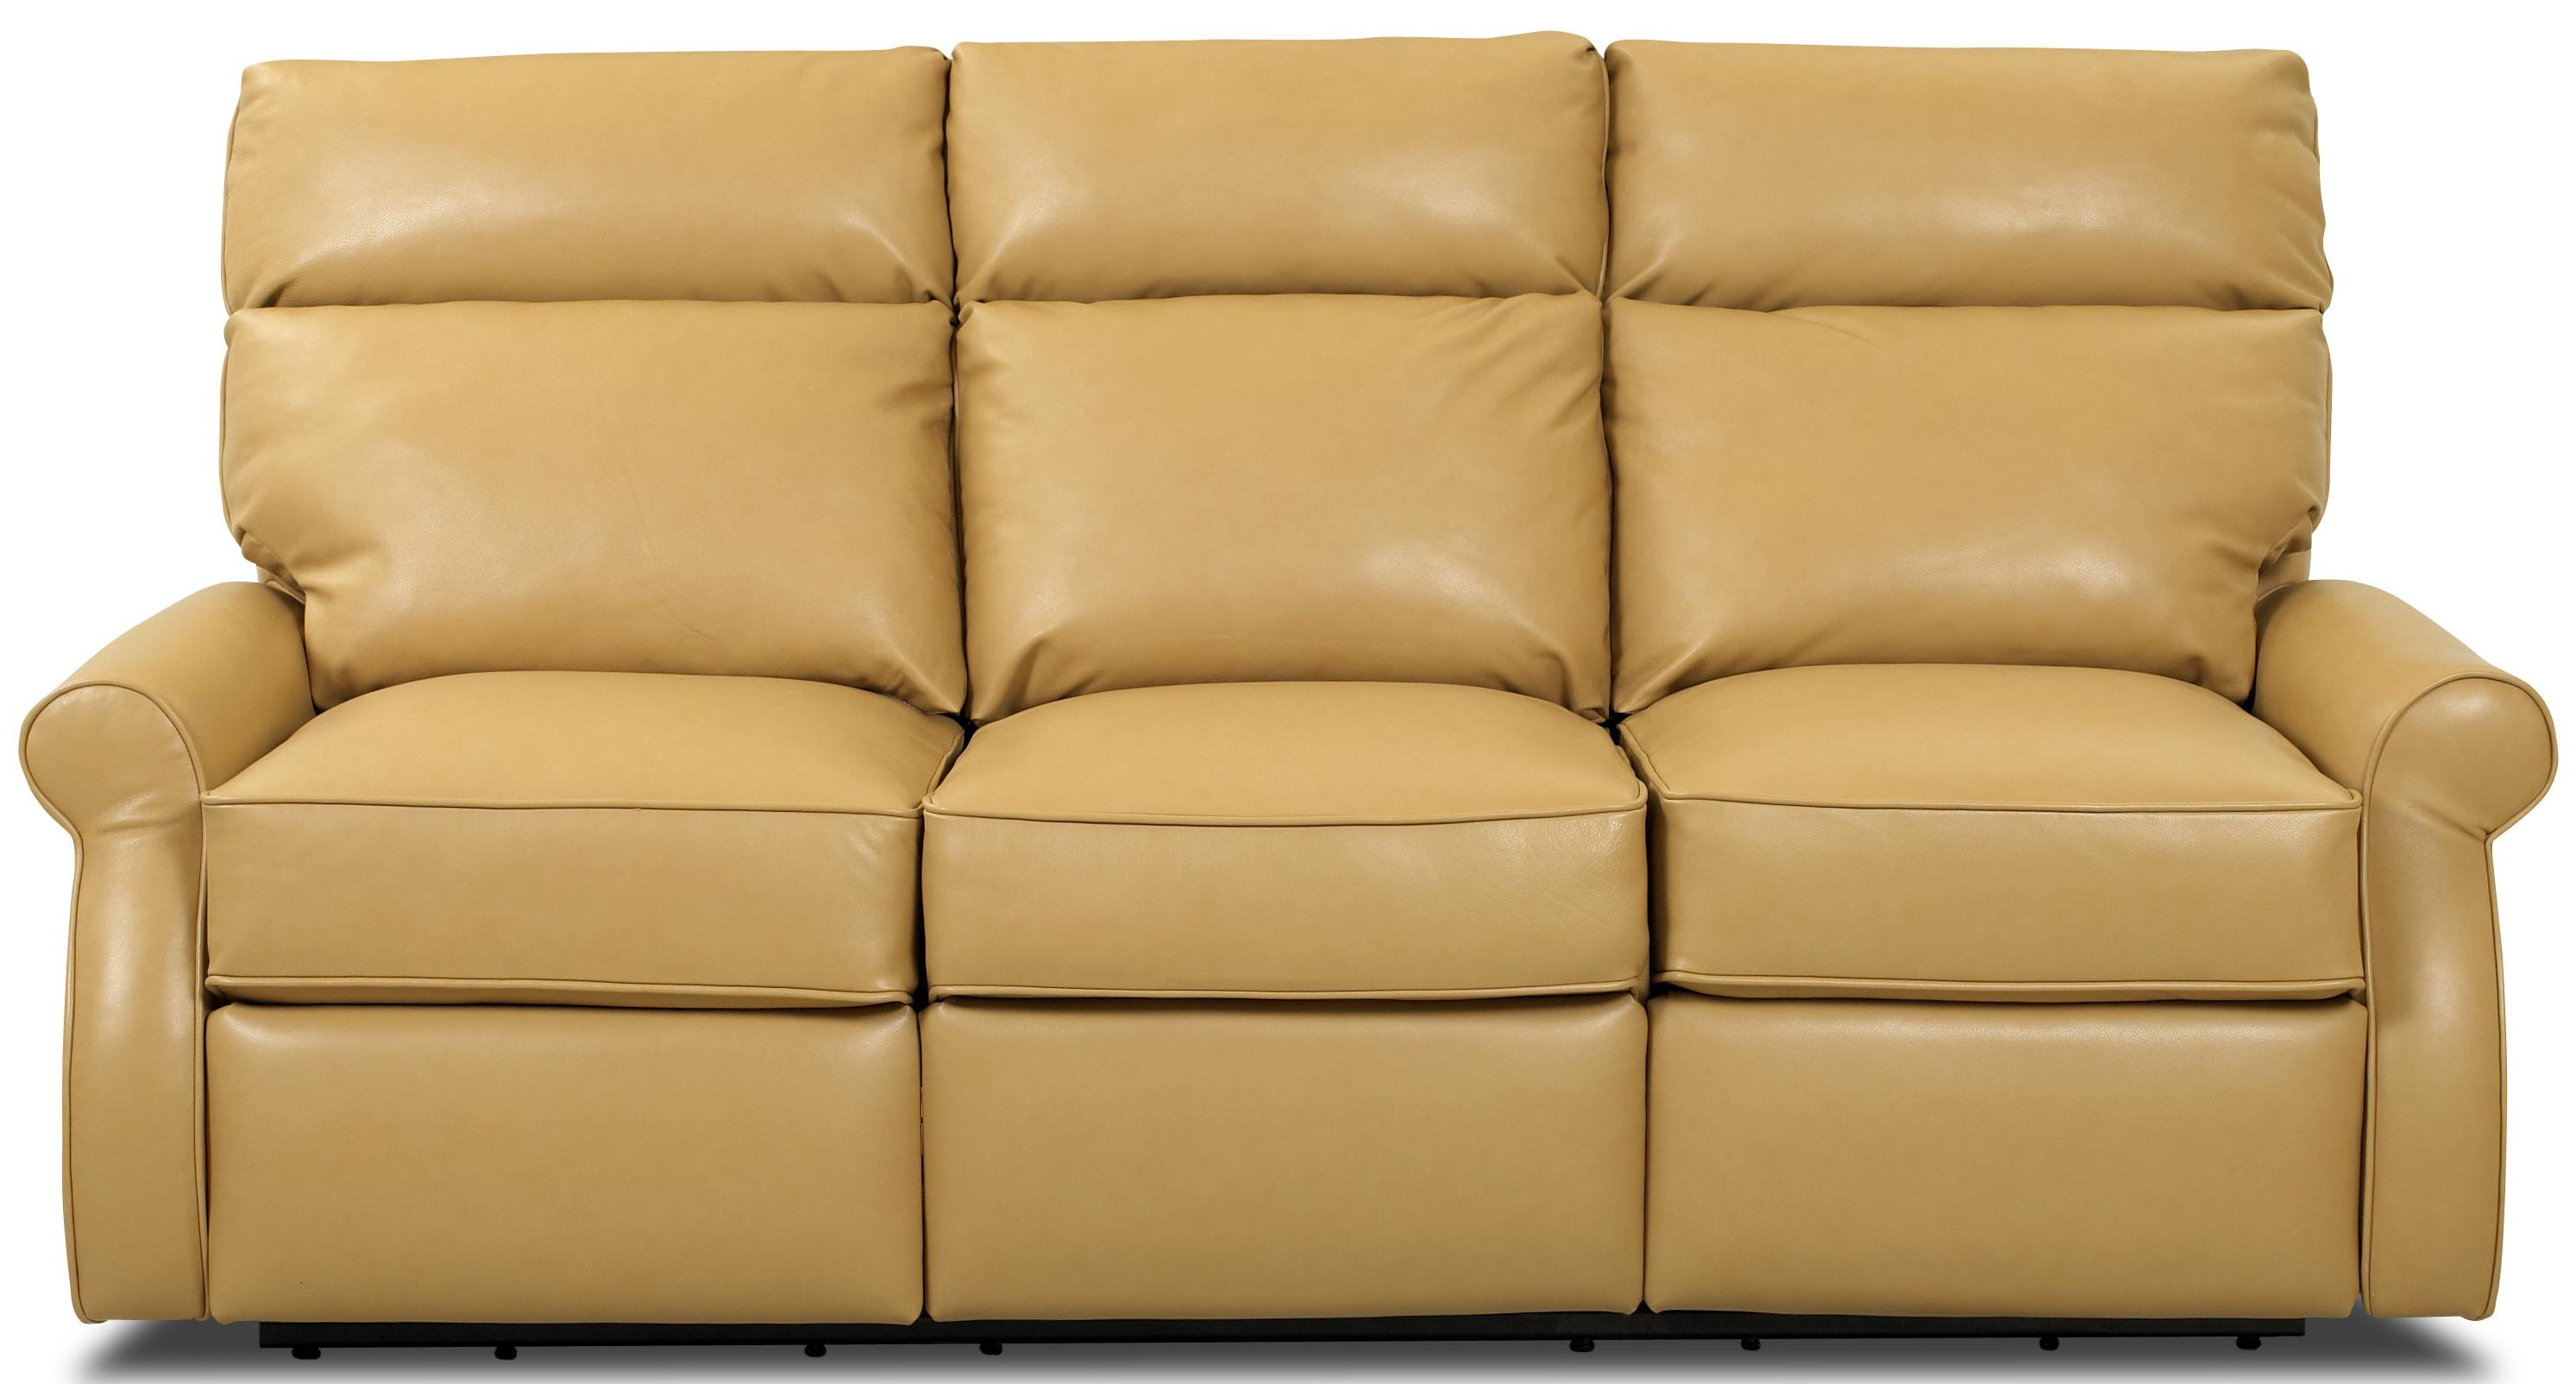 Leslie II Reclining Sofa by Comfort Design at Stuckey Furniture